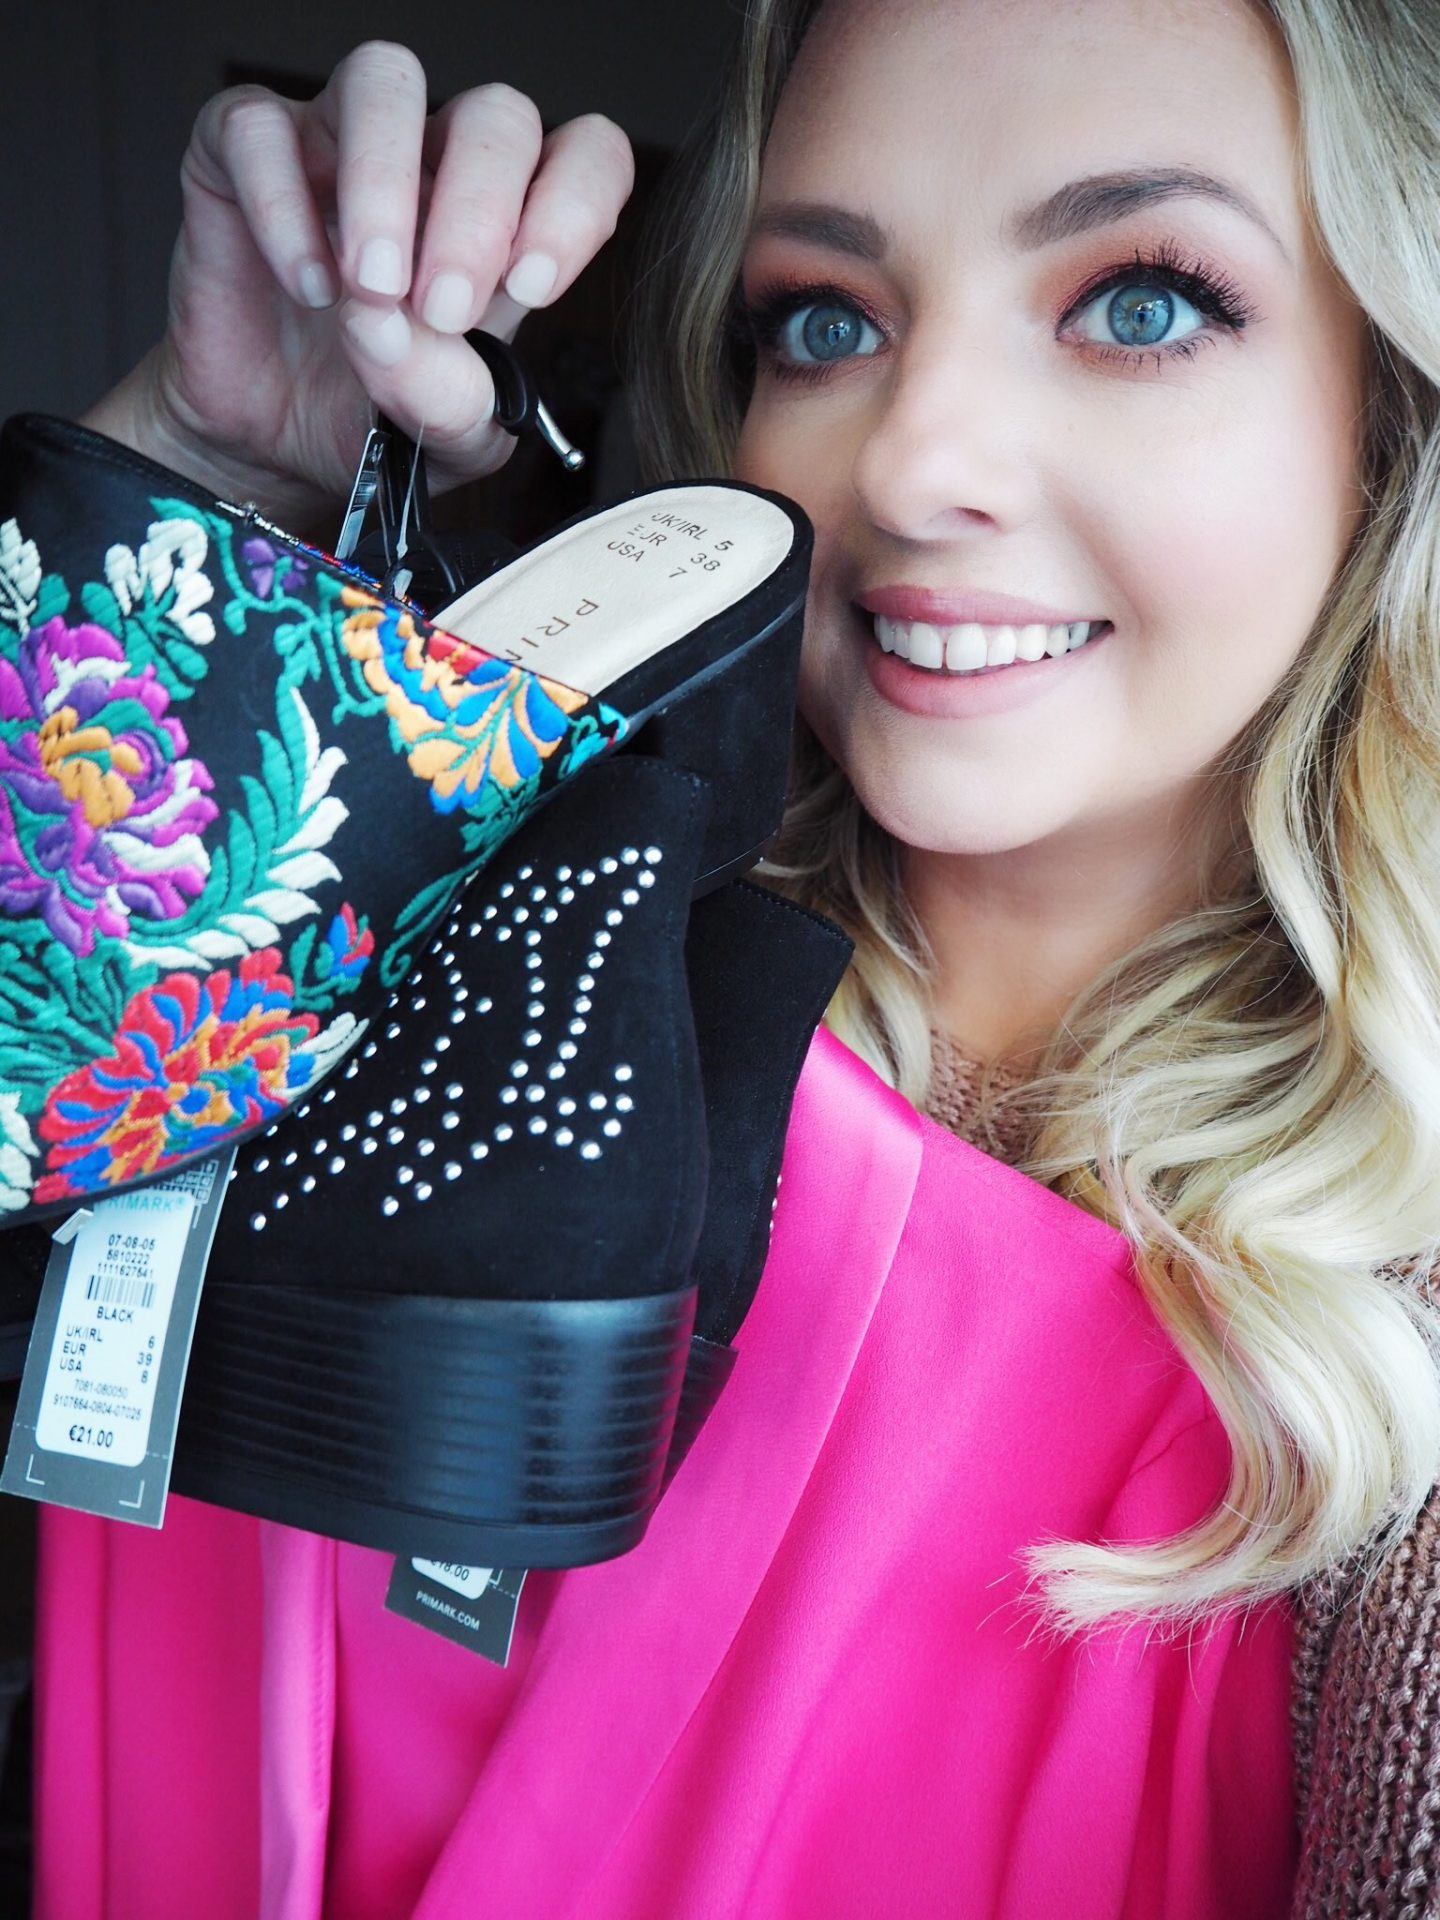 Penneys Haul: August Shoes Dresses and Denim